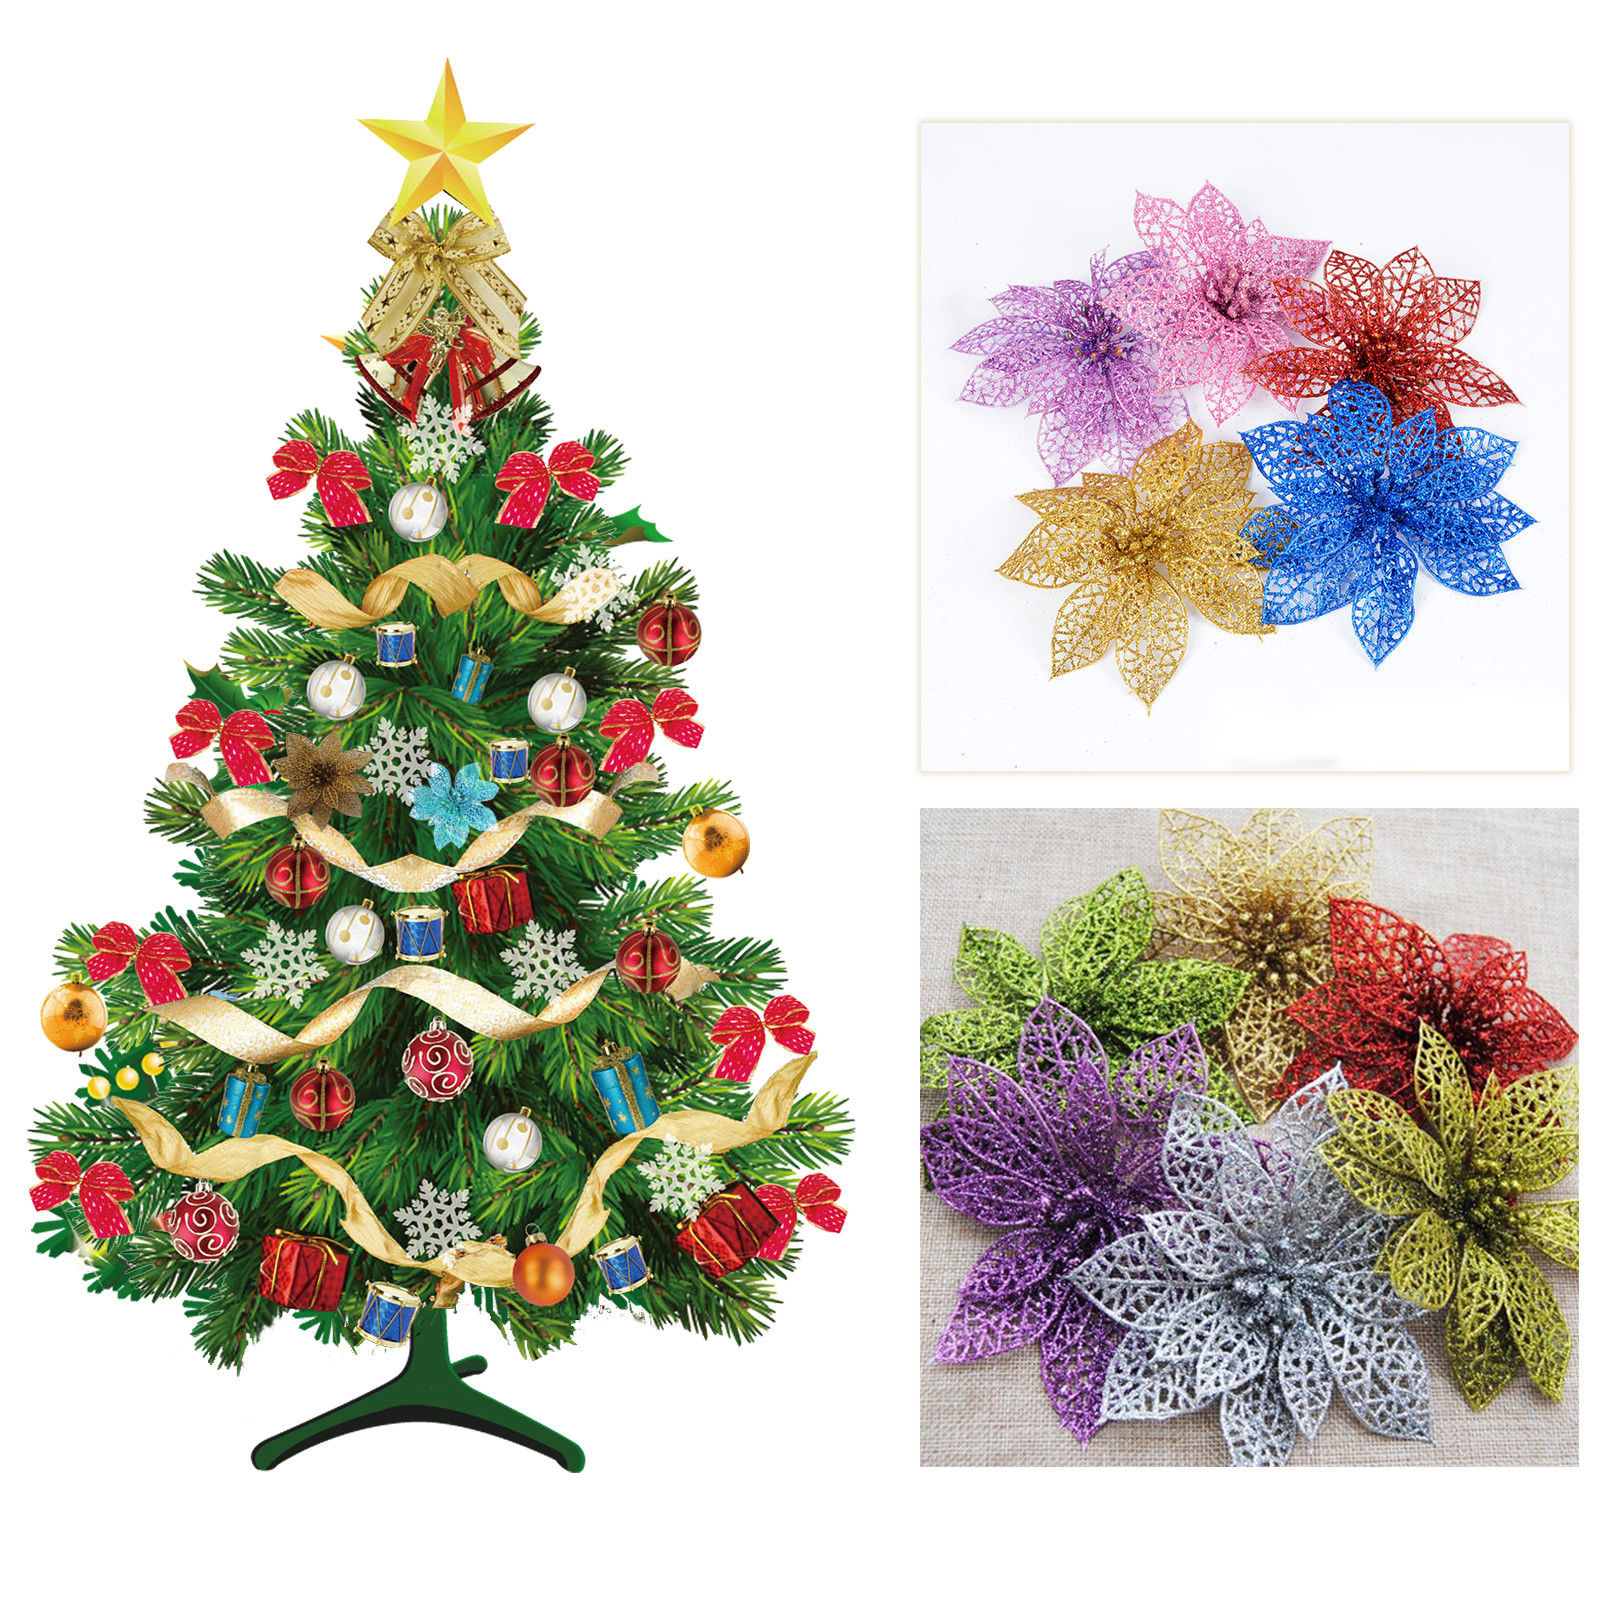 merry christmas tree decorations artificial flower ornaments pendant xmas tree